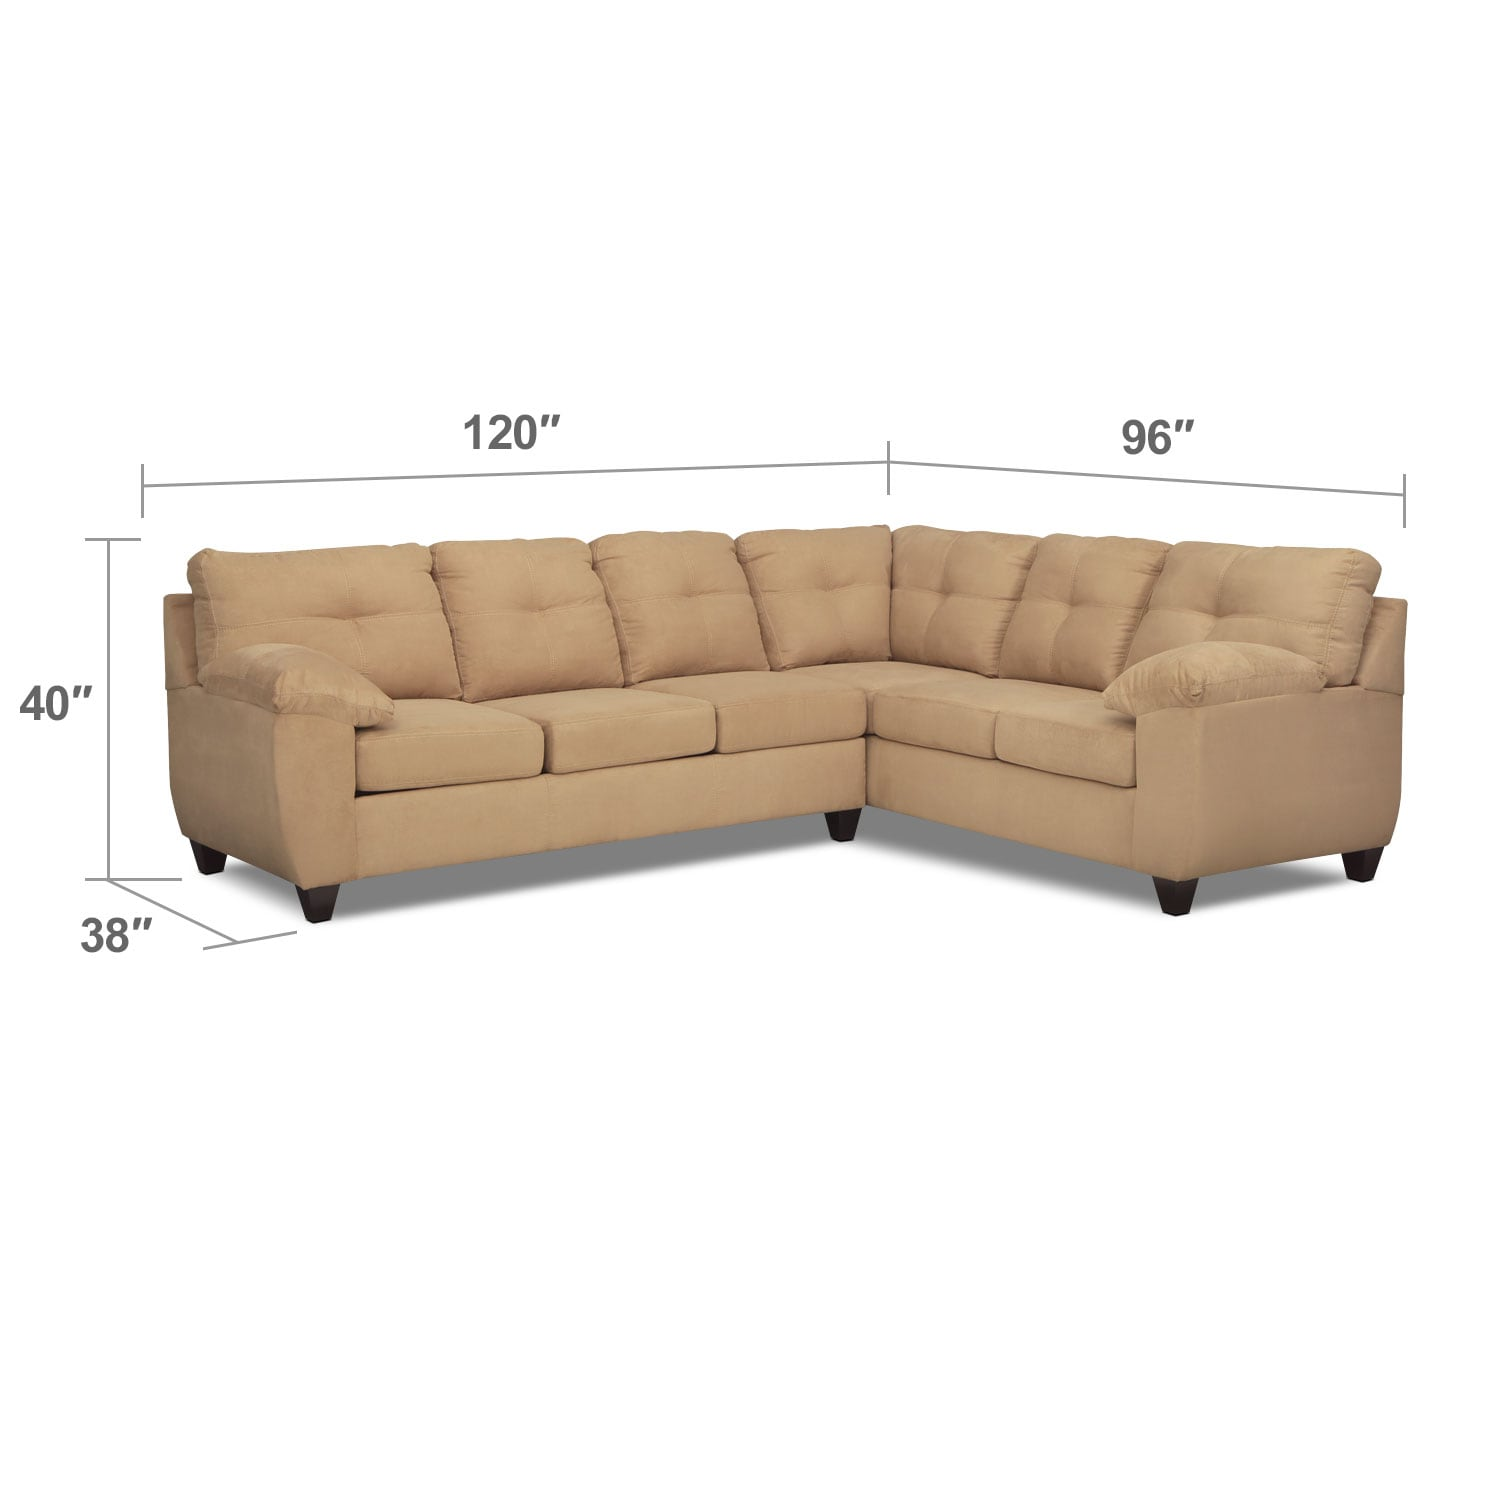 Living Room Furniture - Rialto 2-Piece Sectional with Left-Facing Innerspring Sleeper - Camel